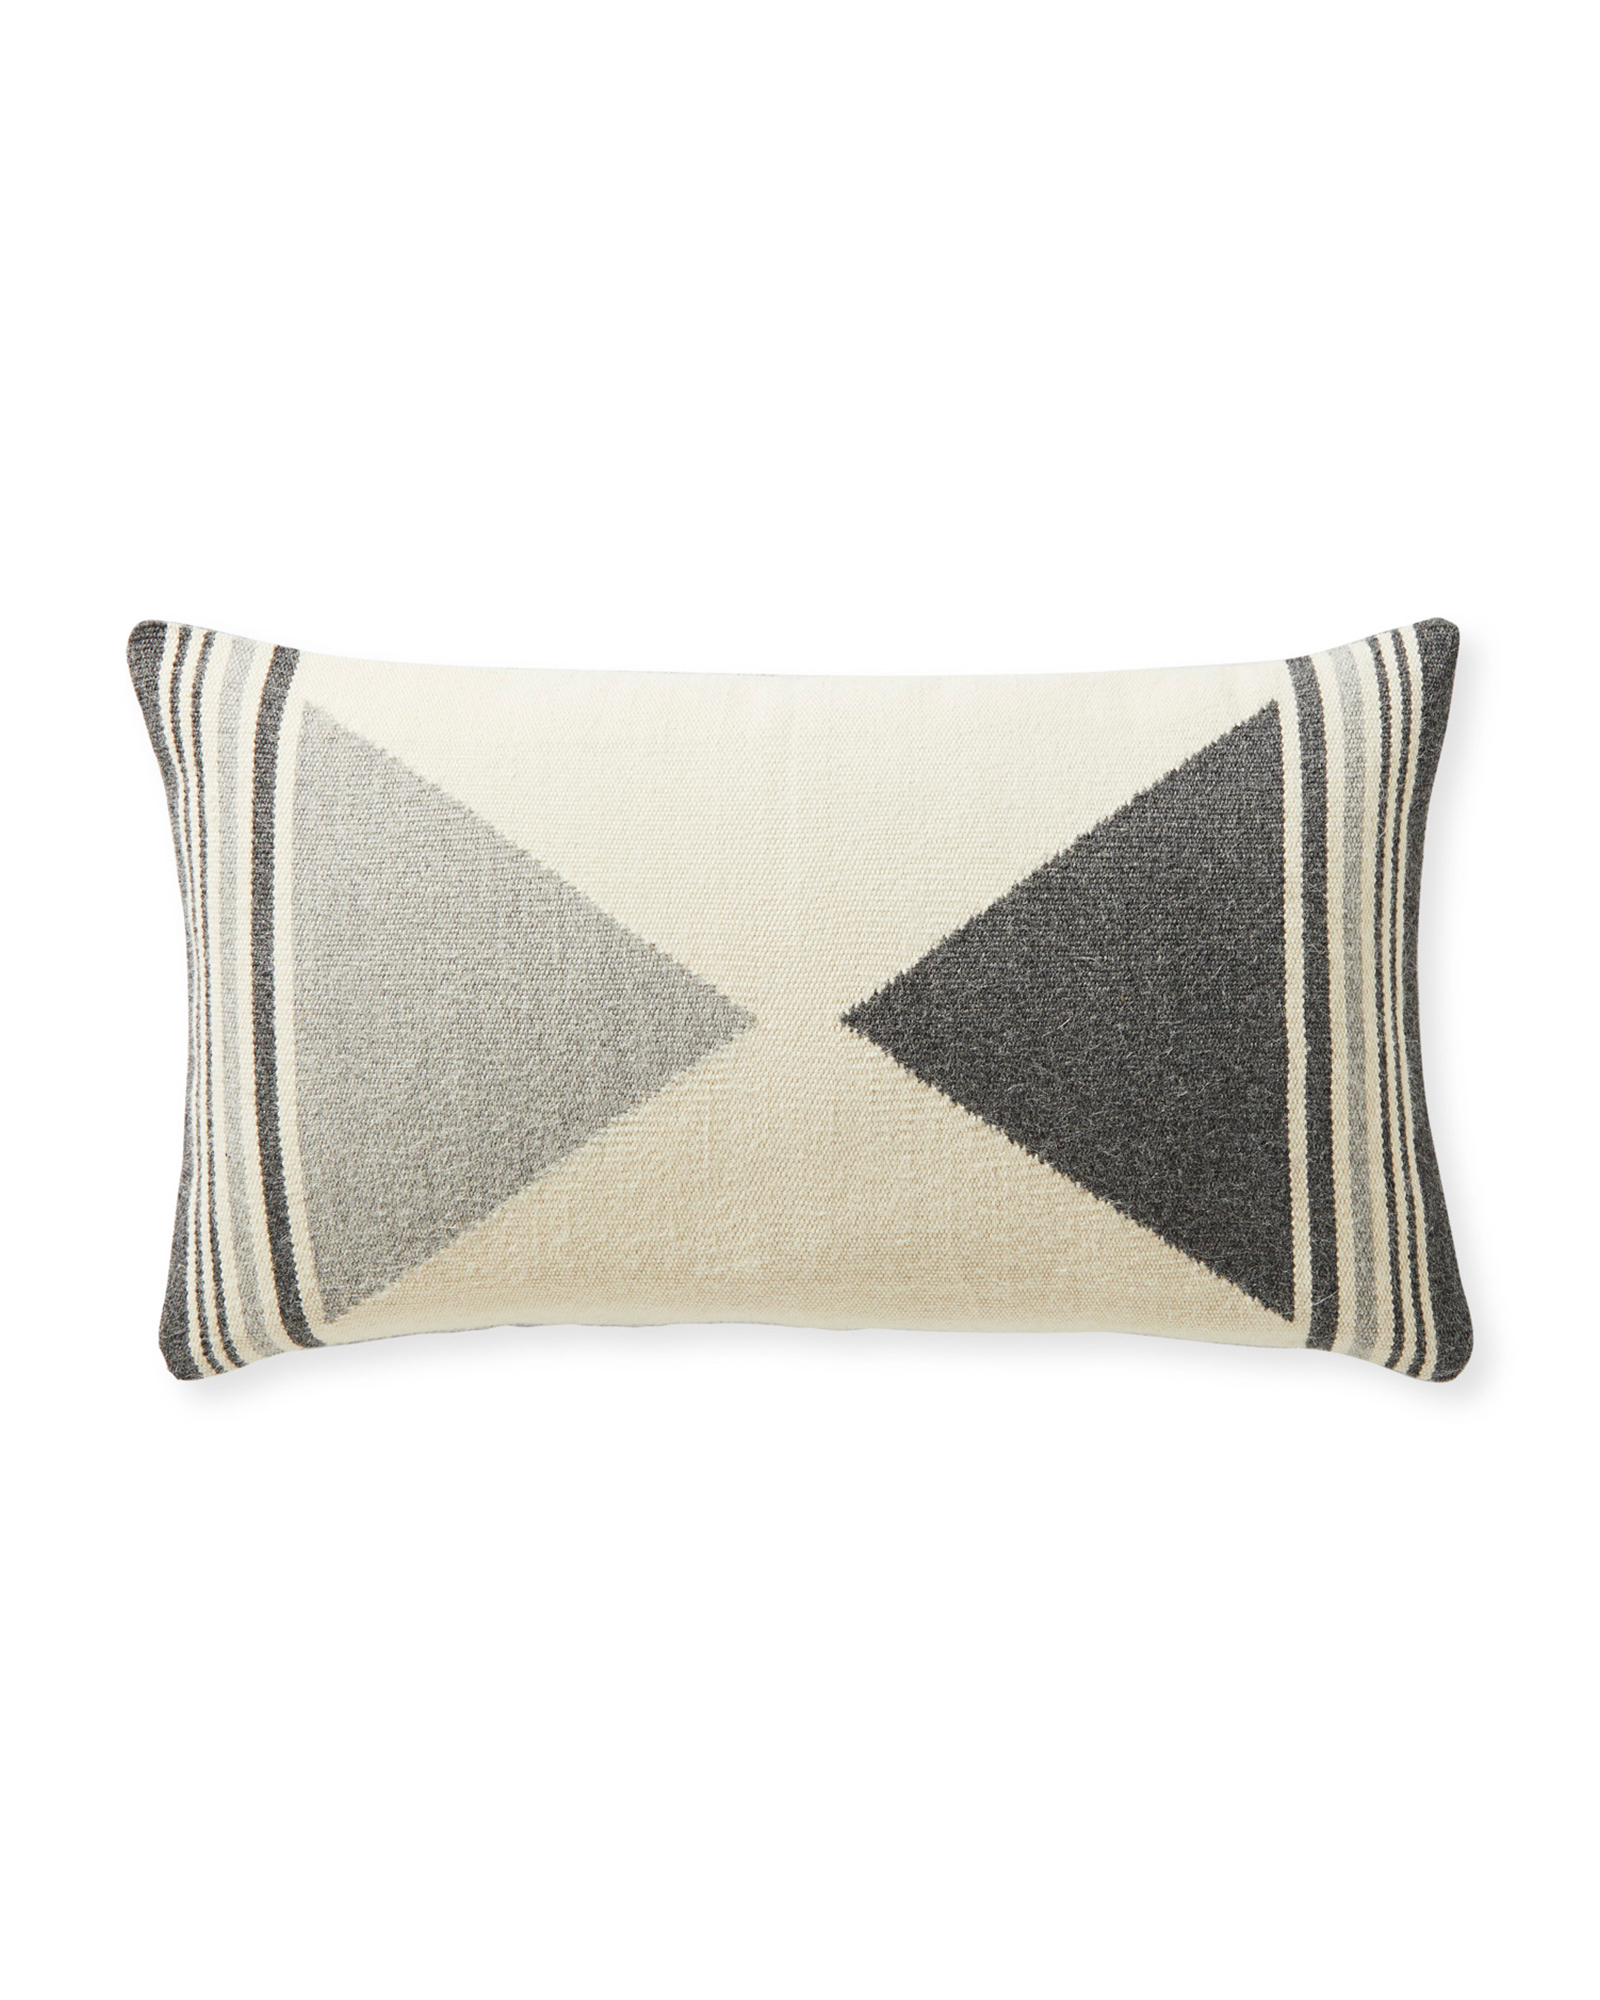 Bayview Pillow Cover, Grey